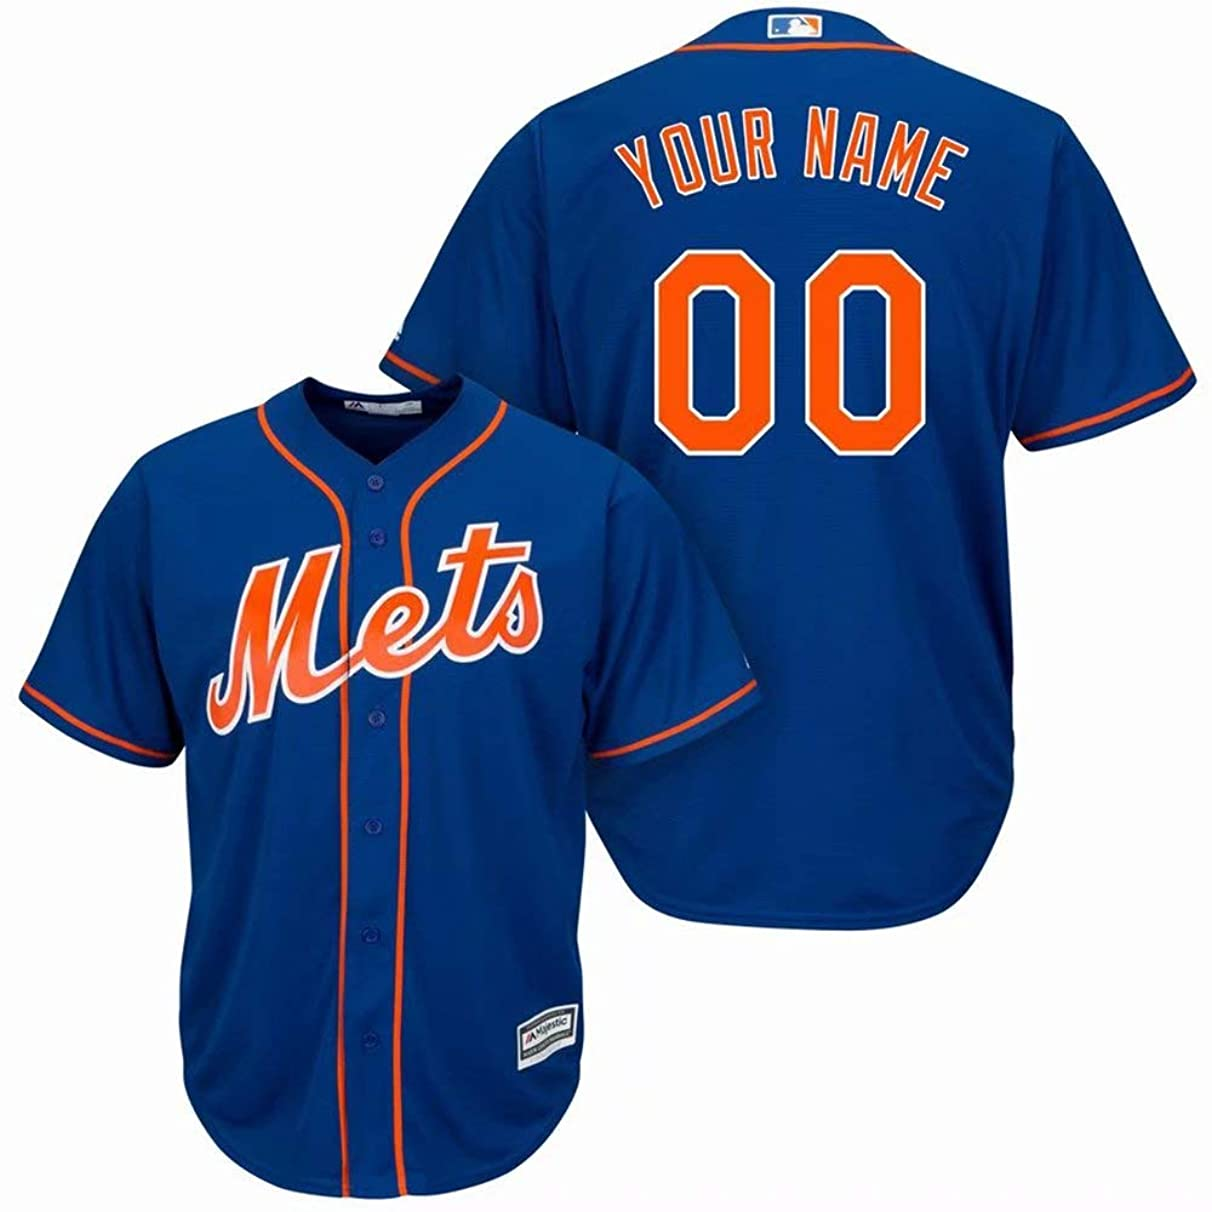 2019 Personalized Jersey Custom Shirts for Team Baseball Customized Sports T-Shirt with Names and Numbe for Men Women Youth